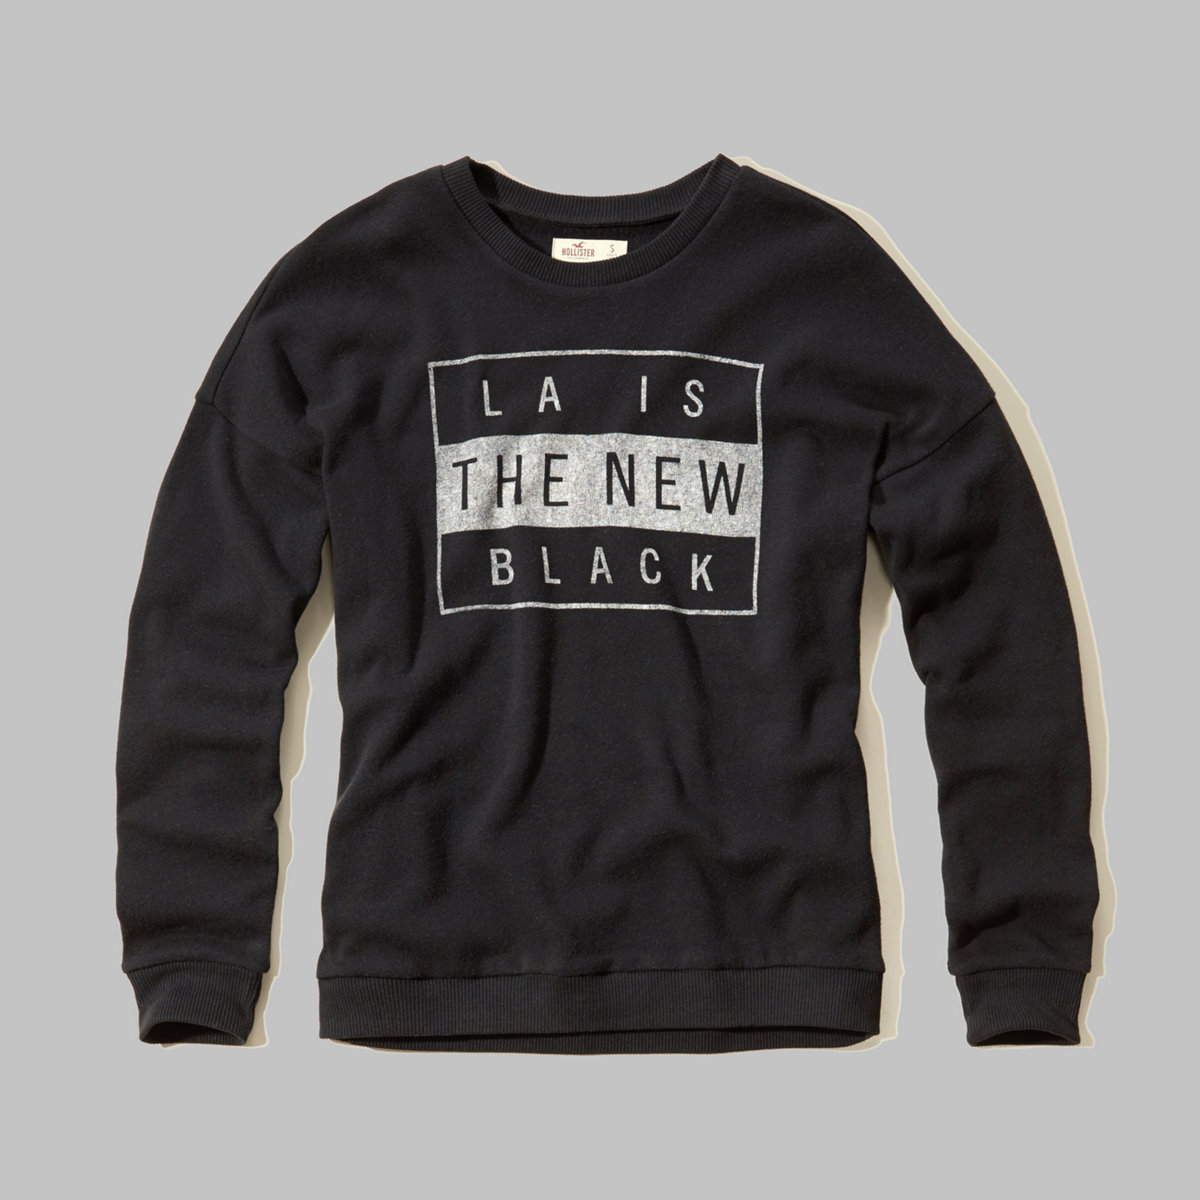 LA Is The New Black Graphic Sweatshirt